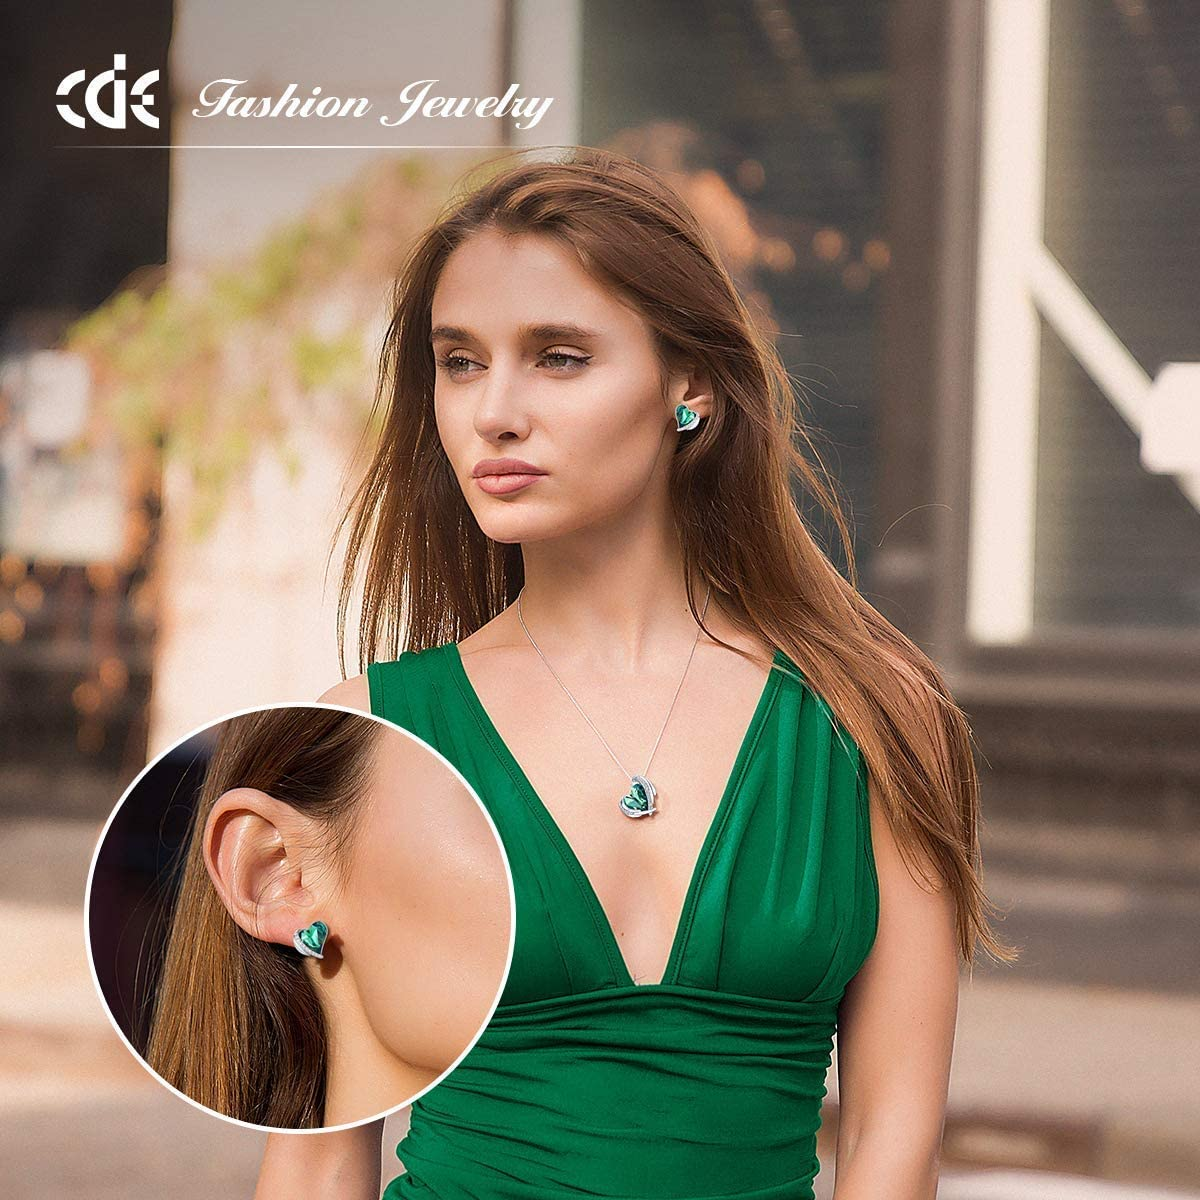 CDE Love Heart Bracelet and Earrings Jewelry Set for Women Rose Gold/Sliver Tone Crystals Birthstone Mothers Day Jewelry Gifts for Women Party/Anniversary/Birthday